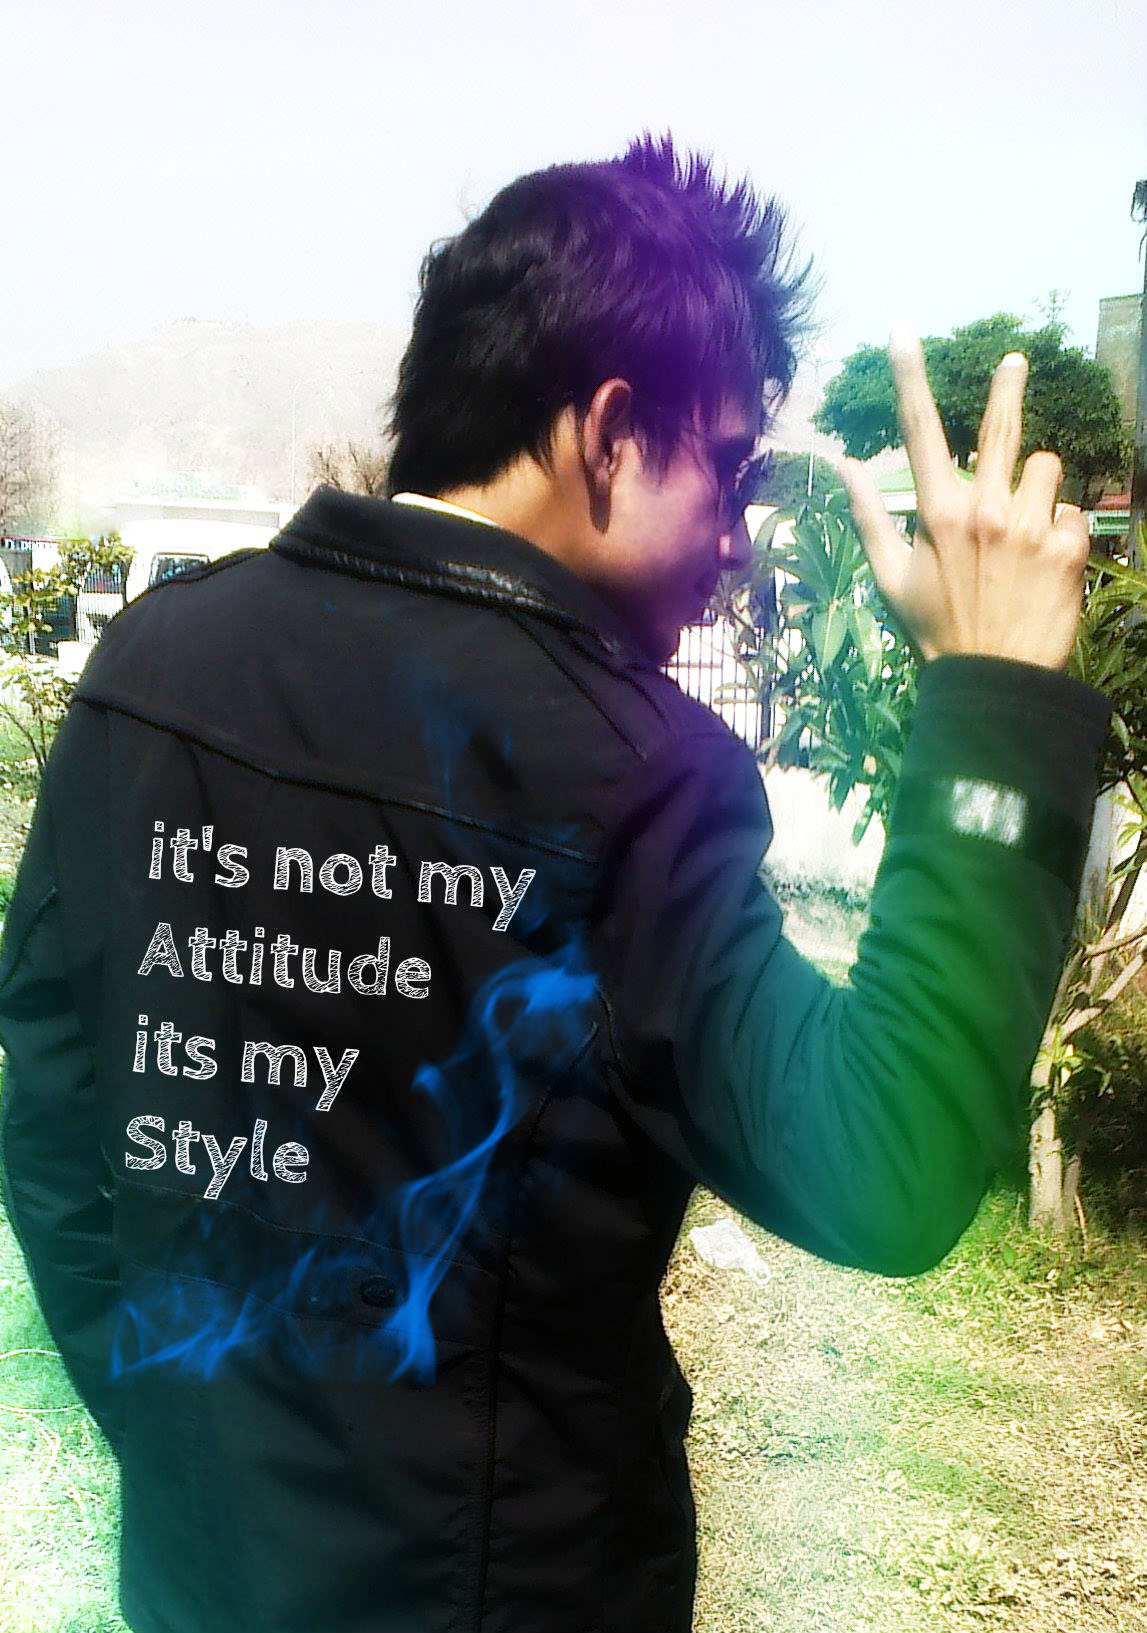 Emo Boys Images Facebook Display Pictures Attitude SonuAtif HD Wallpaper And Background Photos